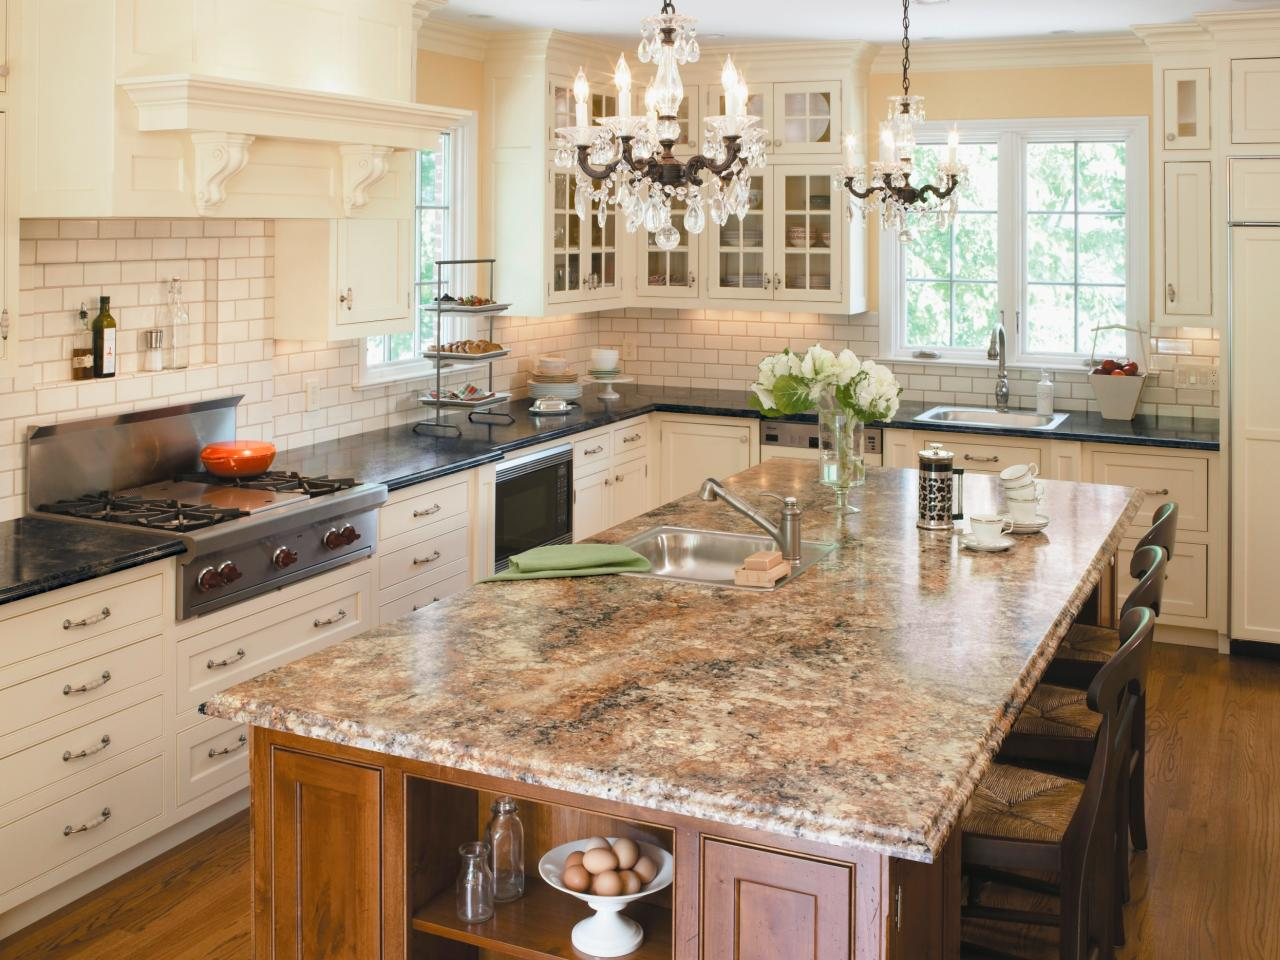 Countertop Ideas choosing kitchen countertops | hgtv